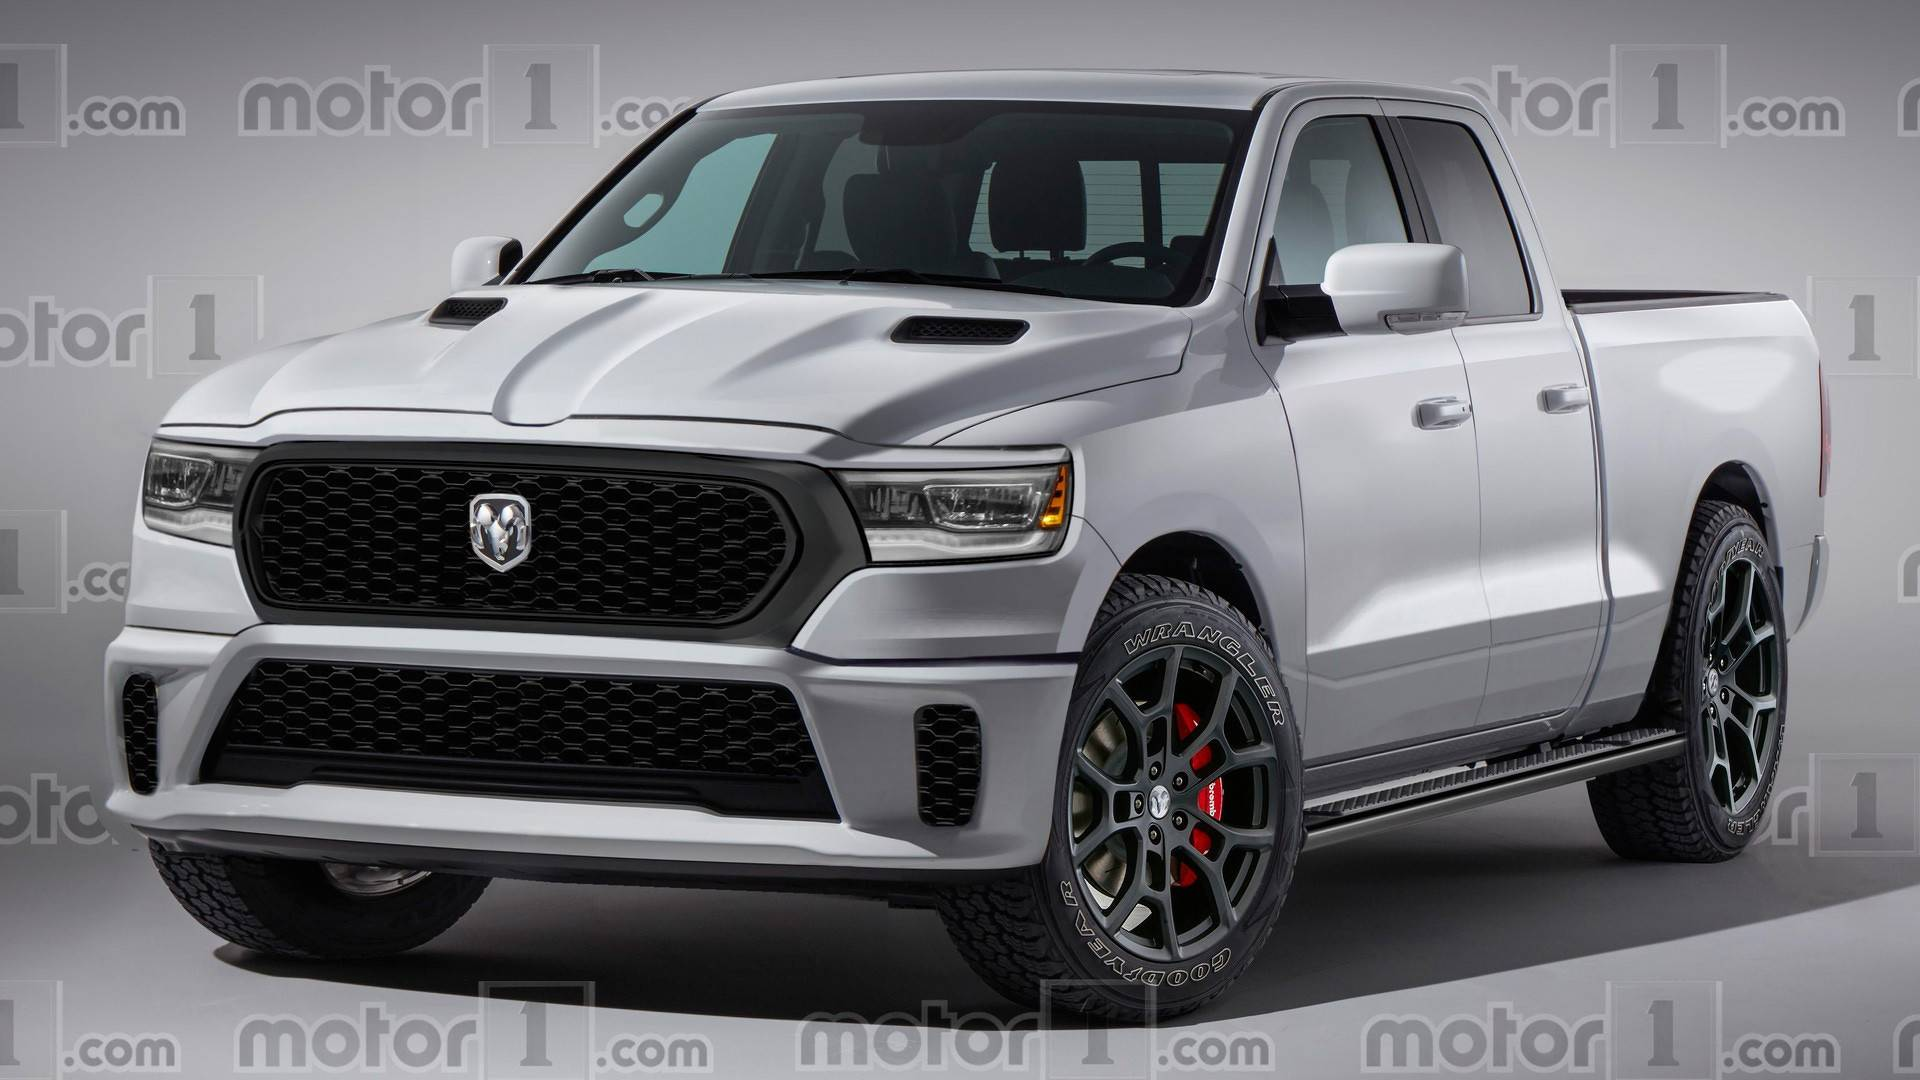 2018 Suvs Worth Waiting For >> 25 Future Trucks And Suvs Worth Waiting For